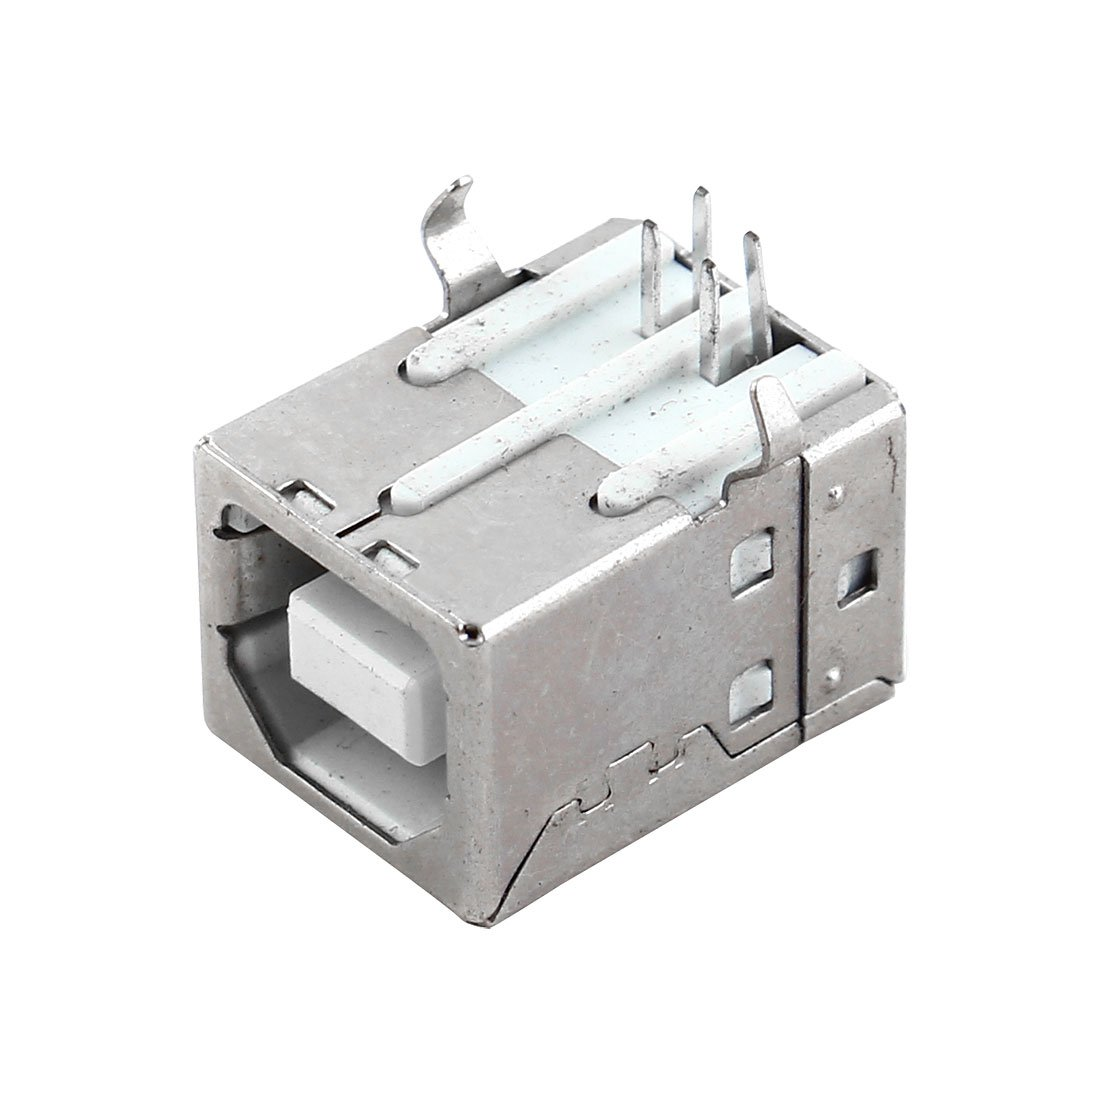 Uxcell a11121400ux0134 Shielded USB Type B Female Port 4 Pins PCB Mount Jack Connector Silver Tone